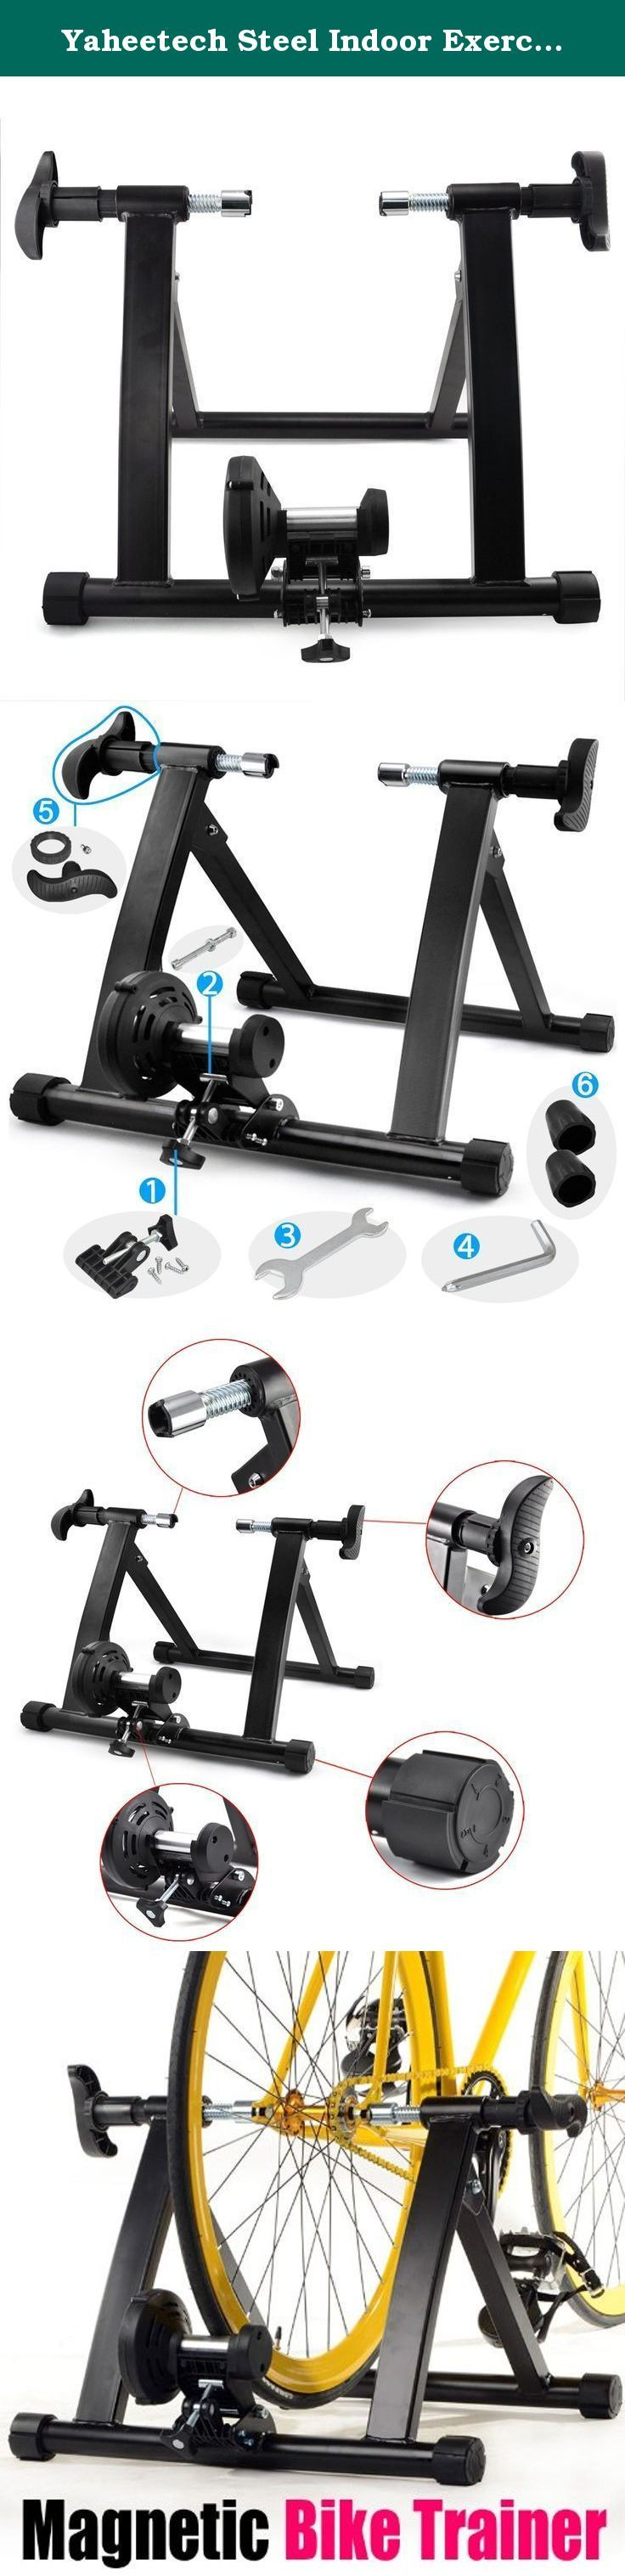 """Yaheetech Steel Indoor Exercise Bike Bicycle Trainer Stand Fit for bicycles with a wheel of 26"""", 700C or wheel dia. between them. Features: Heavy duty stand frame with little noise. 100% brand new and high quality. Perfectly designed for indoor workout and training. Converts your bike into an indoor cycling trainer, no more worries about the weather, just cycling at home. Clamp locks down on quick release or bolt on rear wheels Fit for bicycles with a wheel of 26"""", 700C or wheel dia…"""